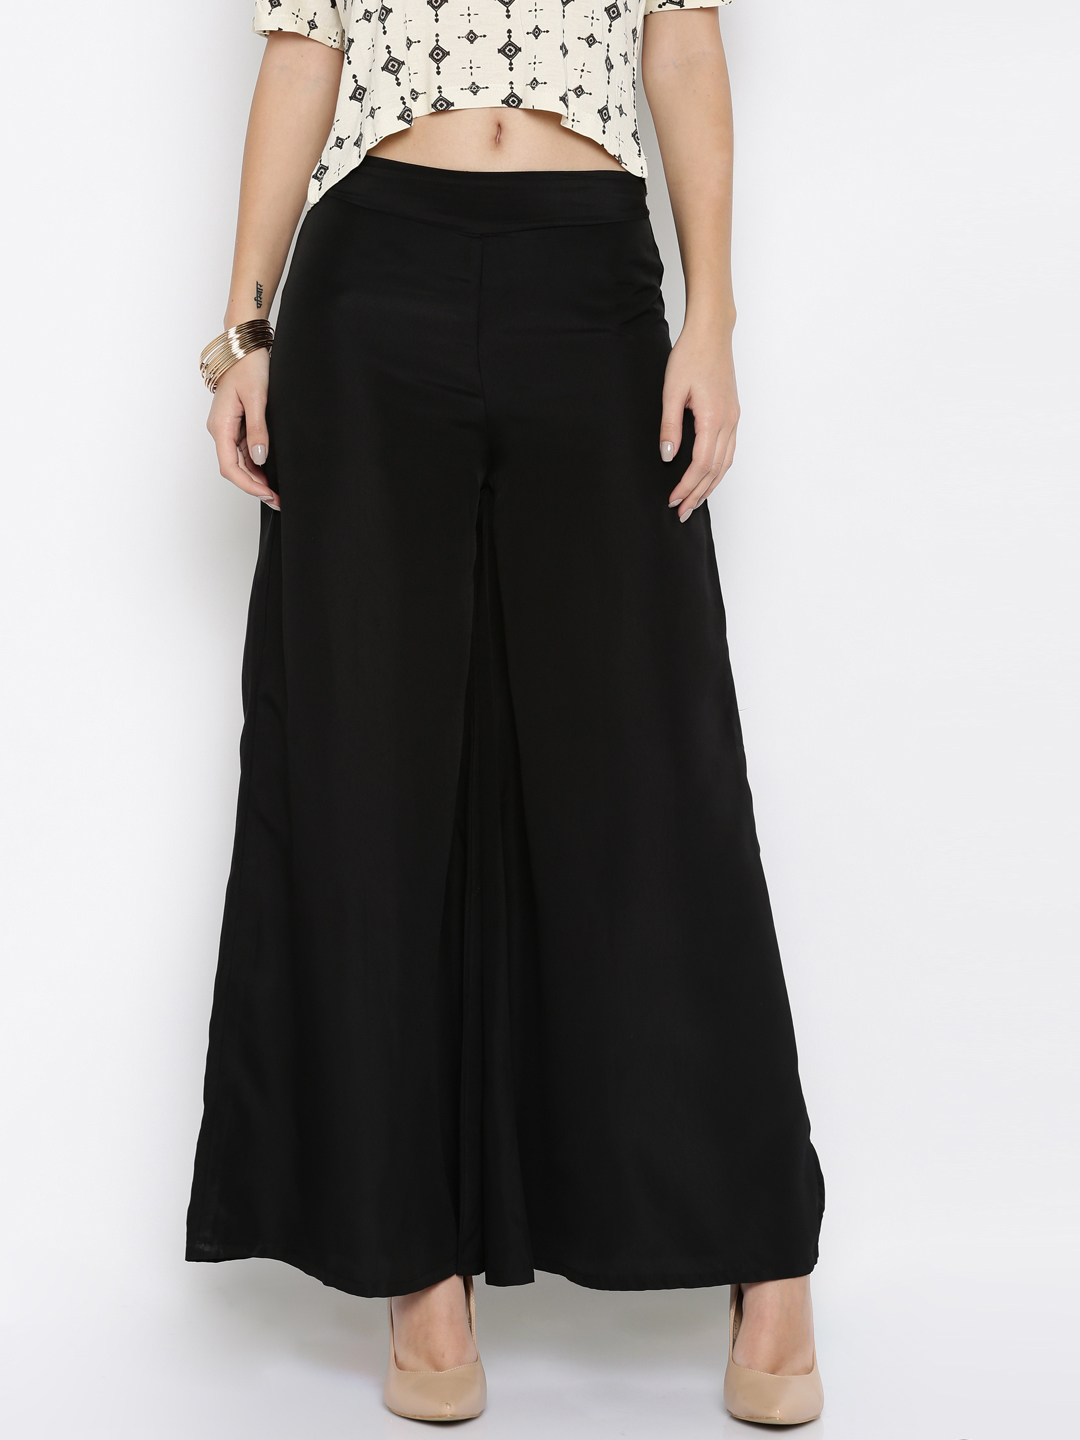 palazzo trousers palazzos for women - buy palazzo pants online for women djcwurl